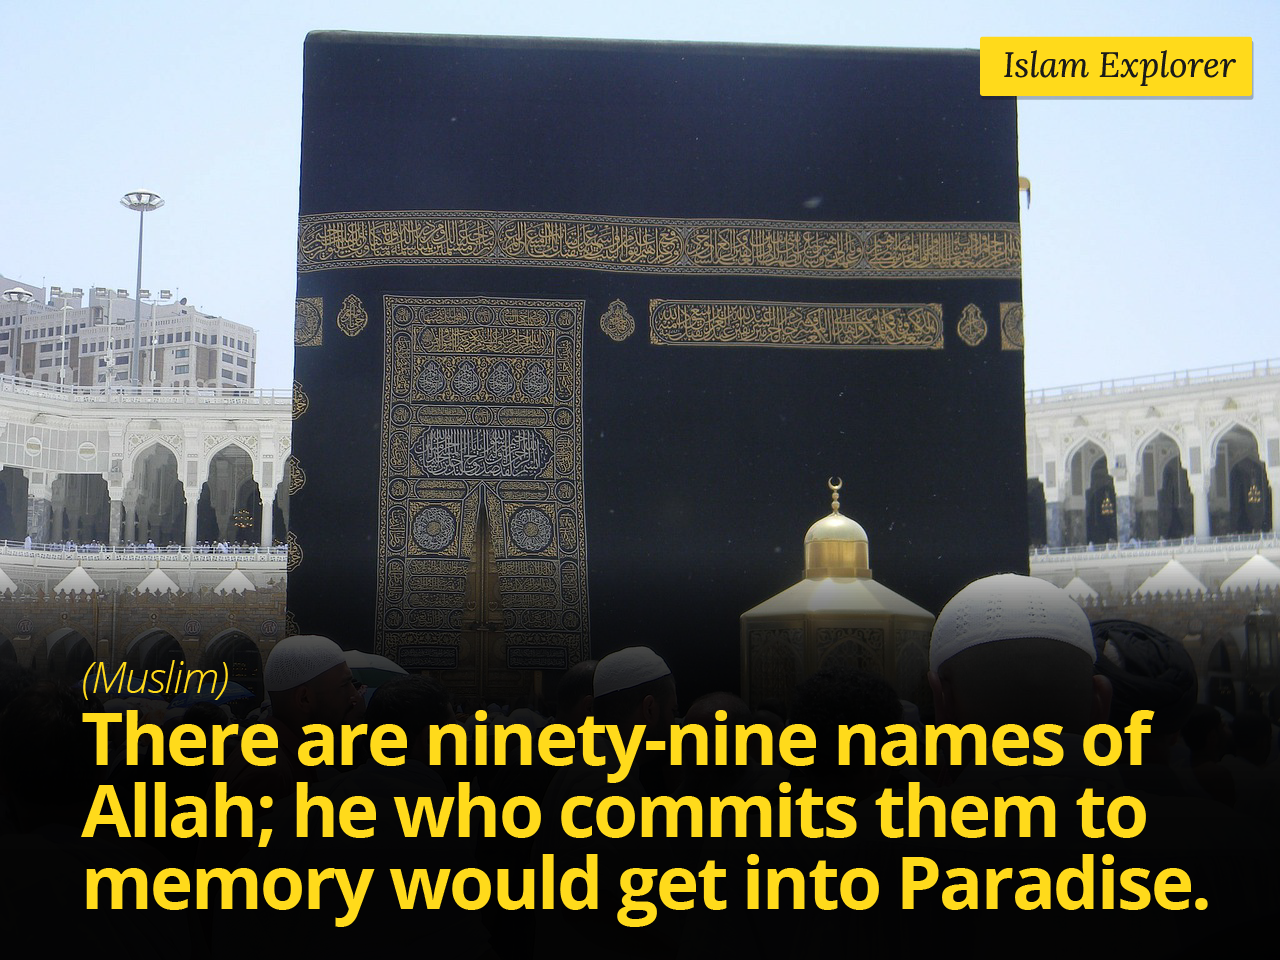 There are ninety-nine names of Allah